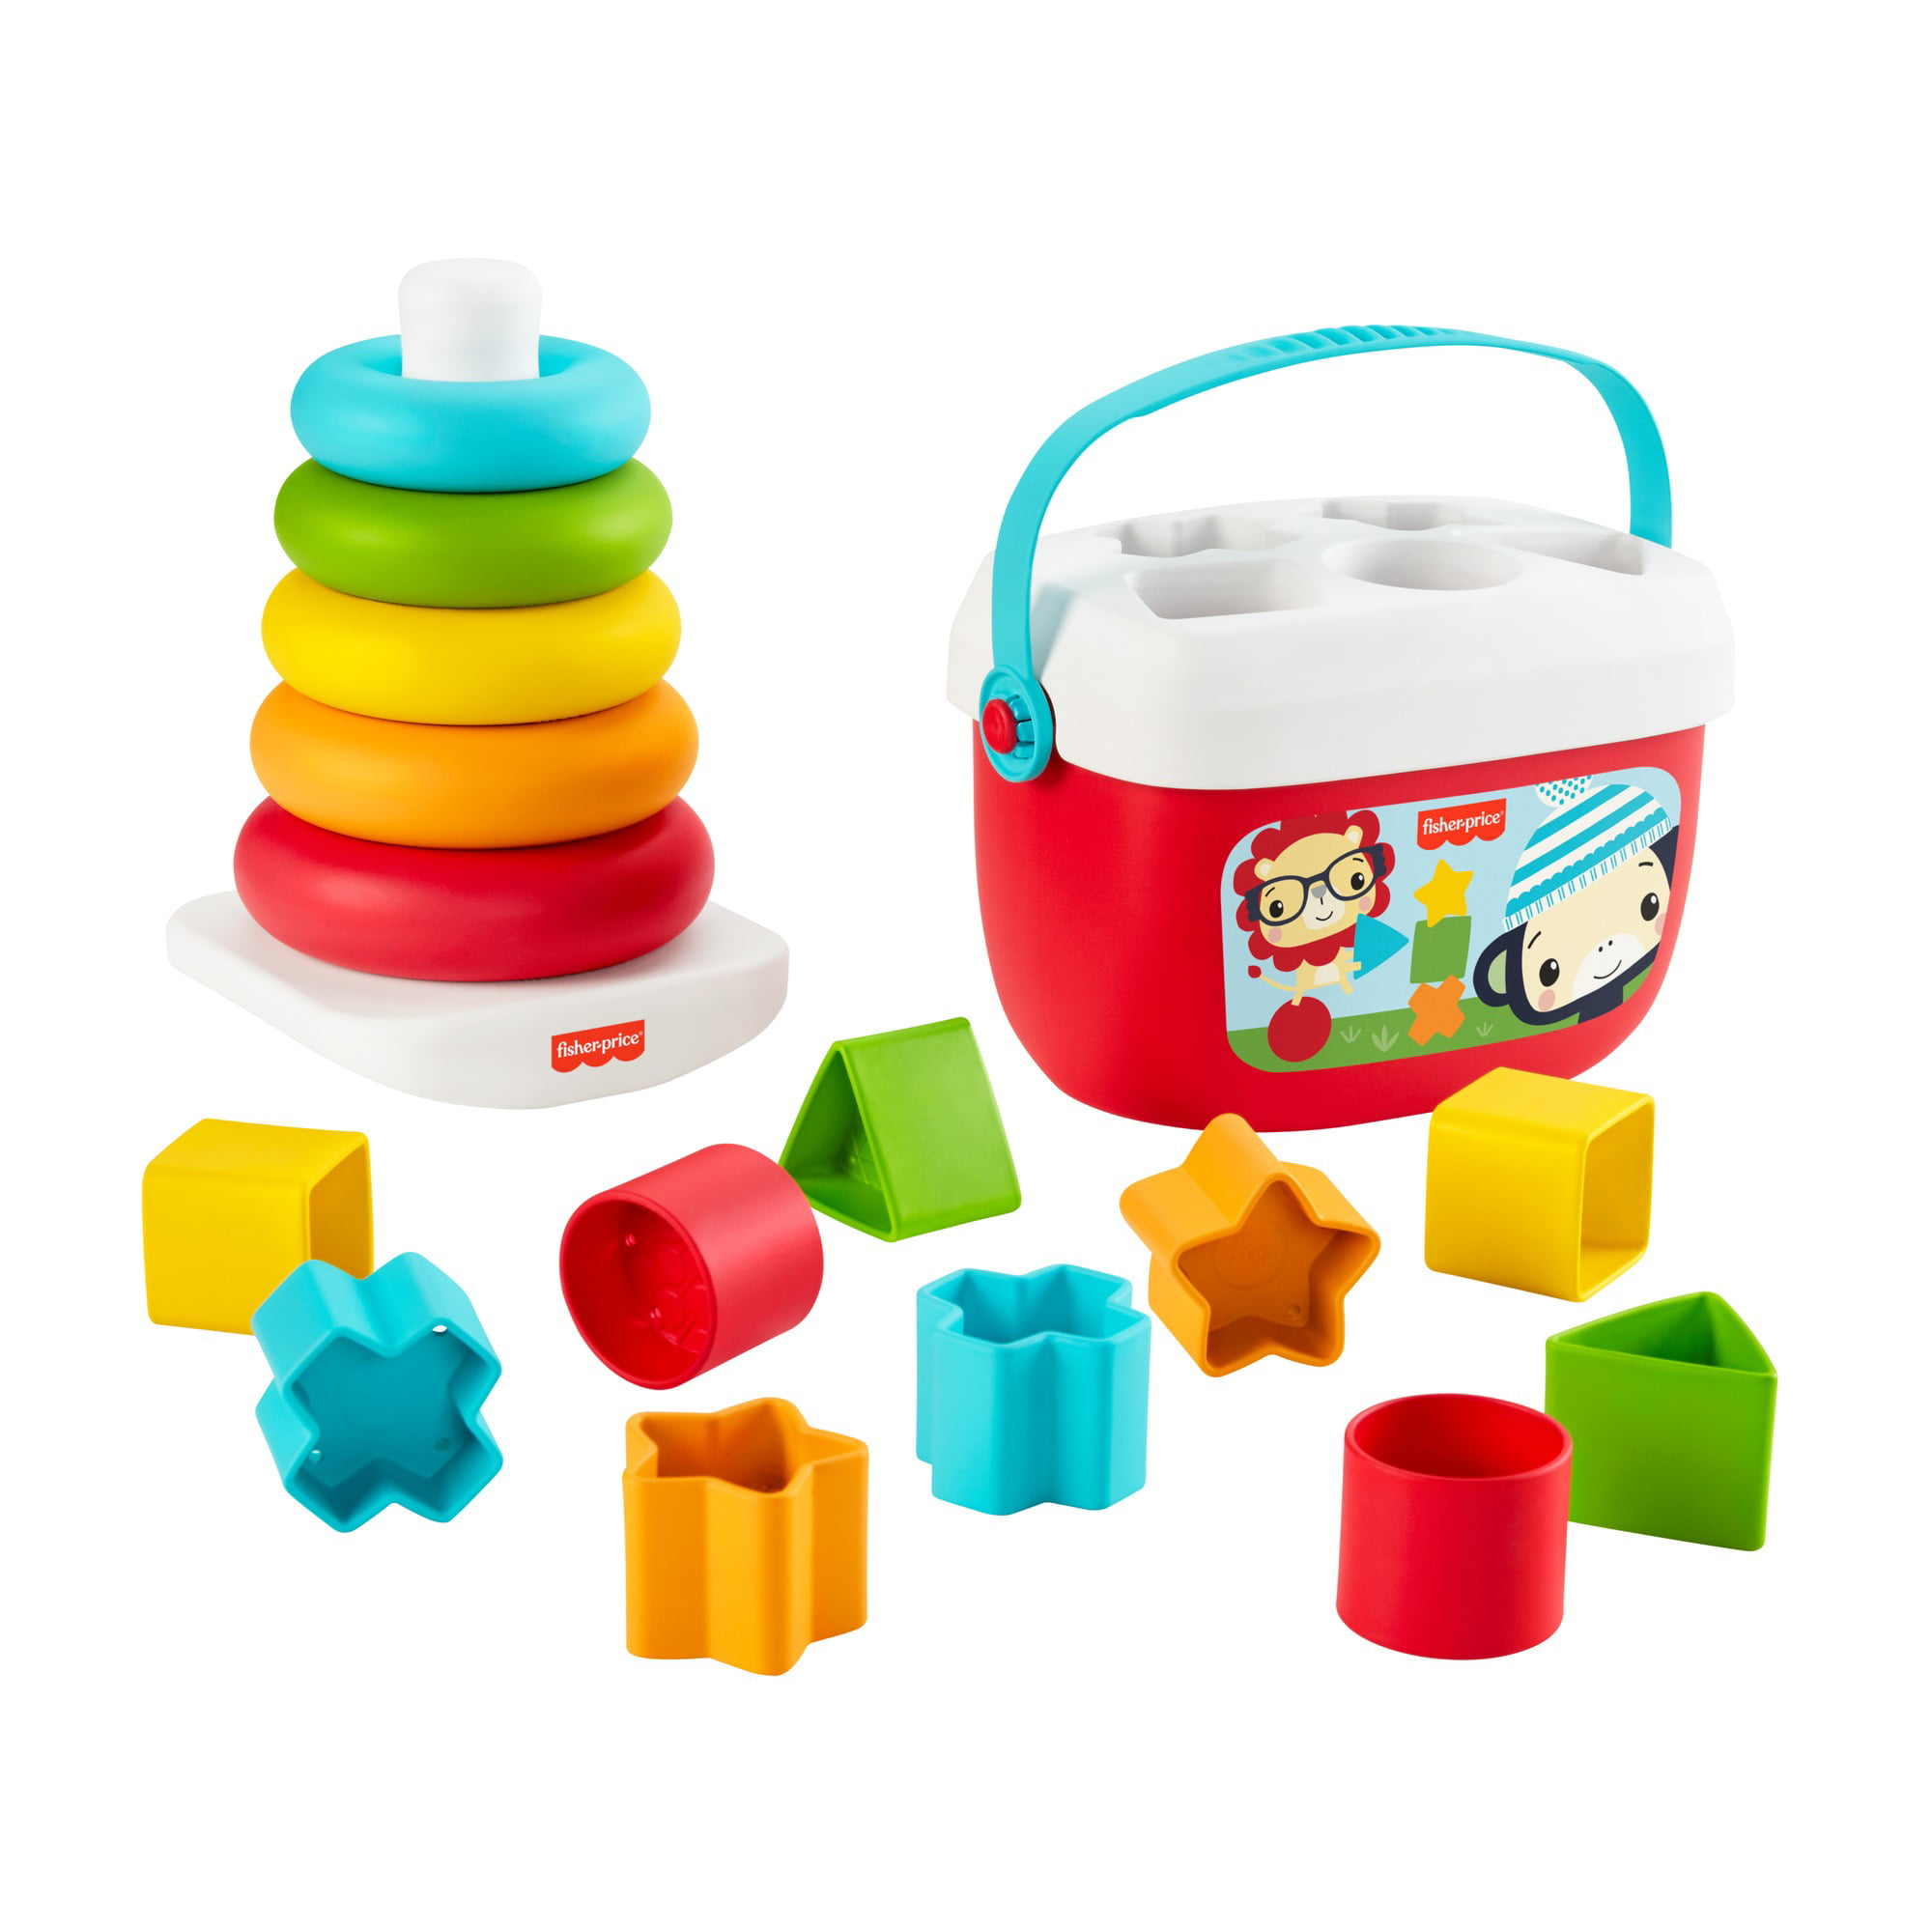 Fisher Price Rock A Stack Classic With 5 Colorful Rings Walmart Com Walmart Com